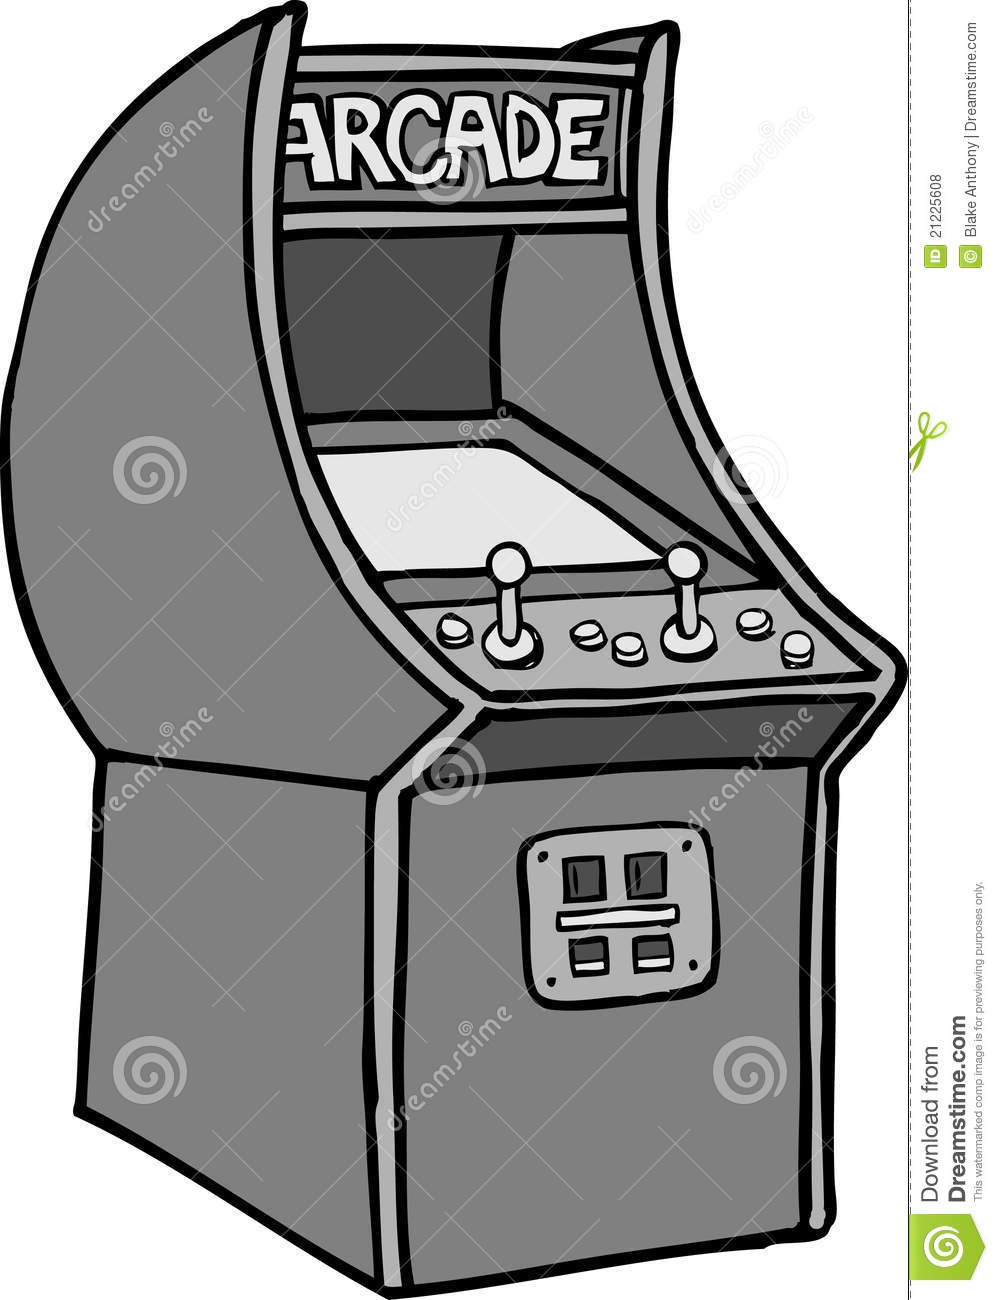 Arcade machine clipart.